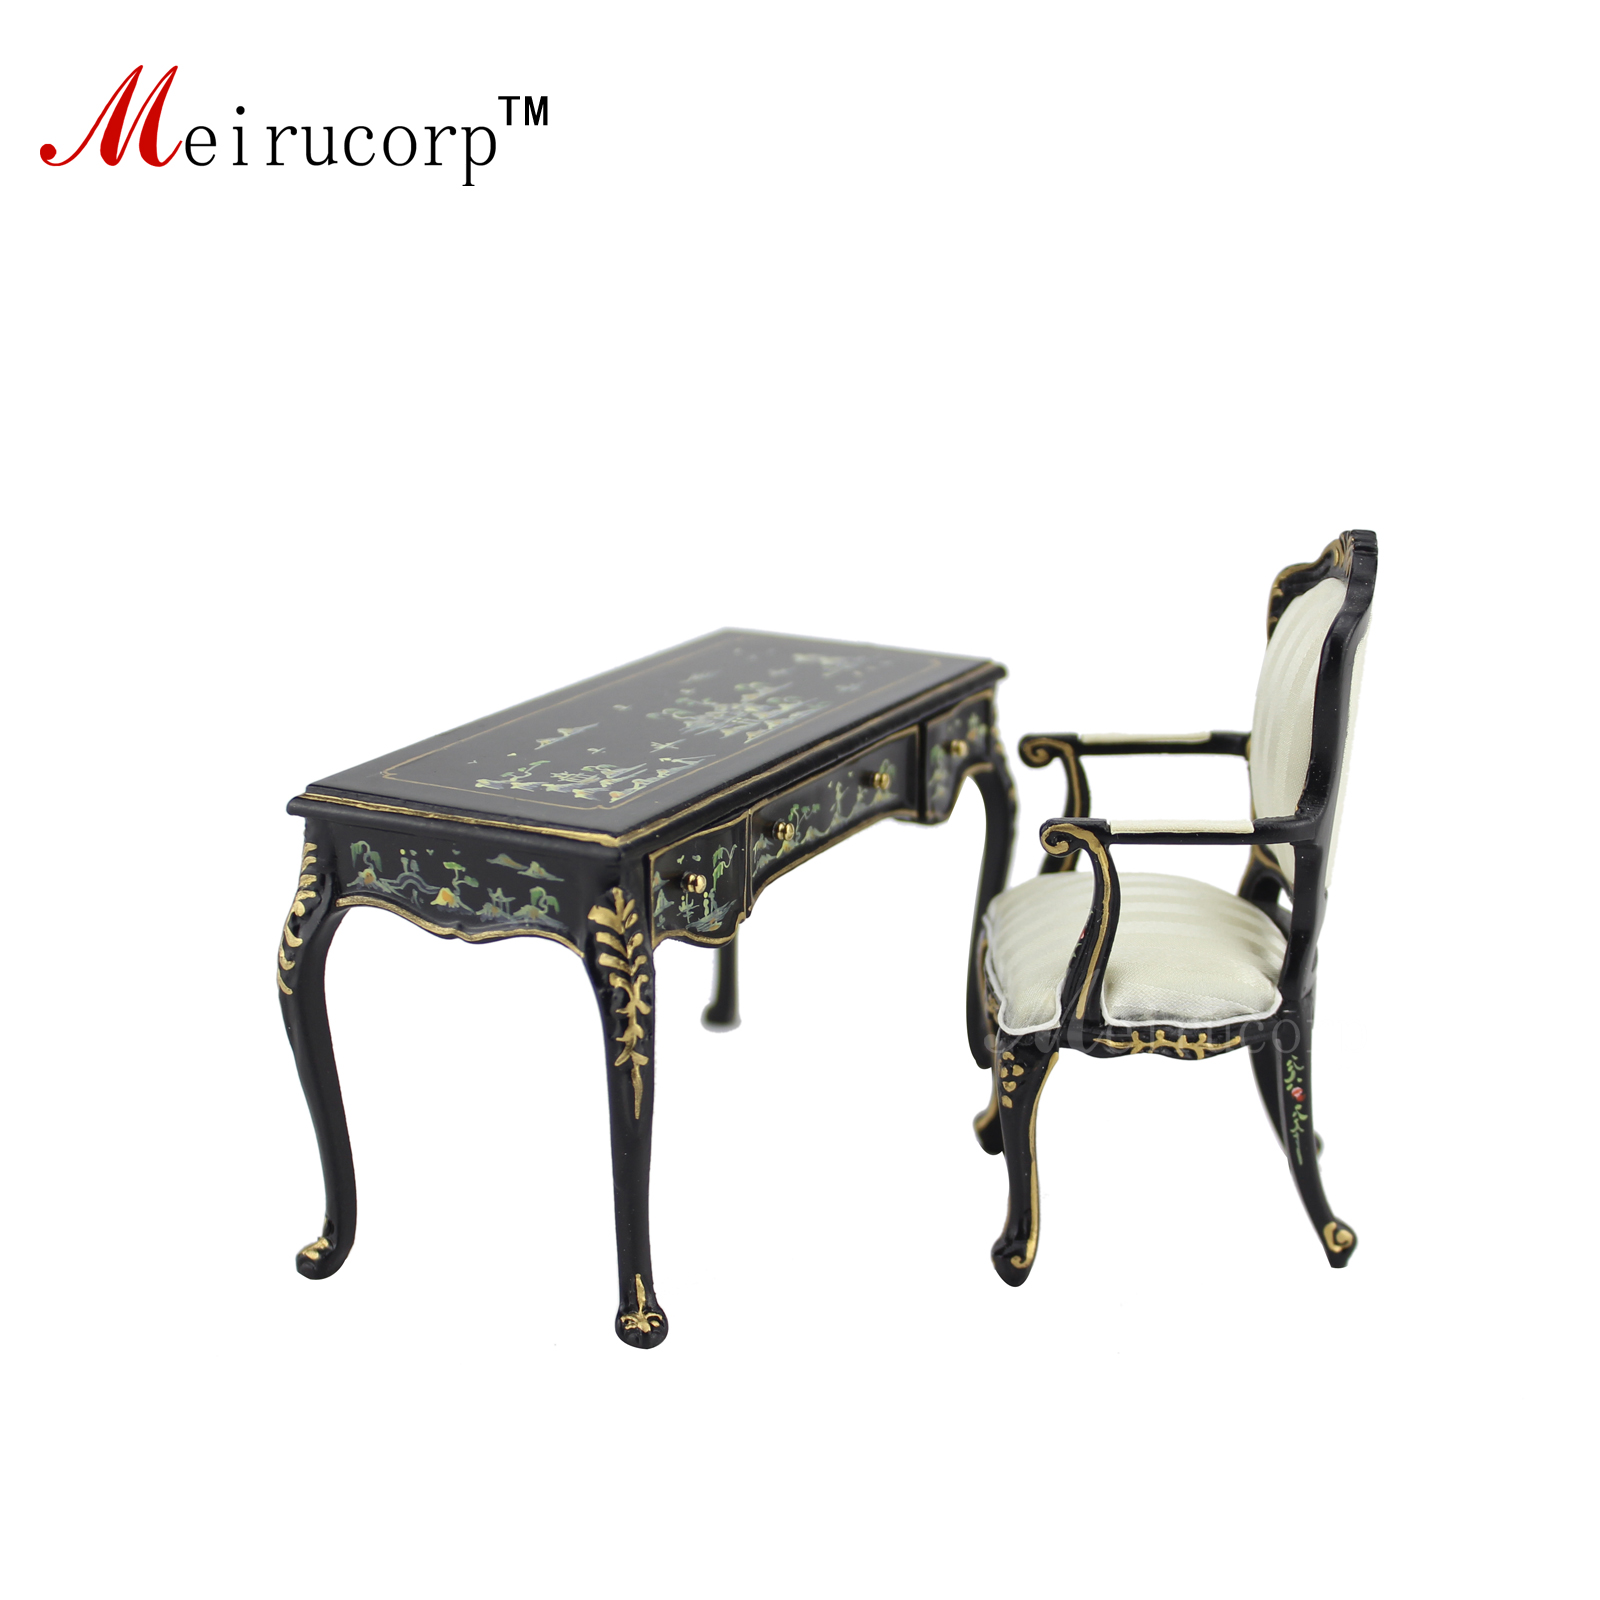 Dollhouse 1:12 scale Miniature Hand painted landscape painting Desk and chairDollhouse 1:12 scale Miniature Hand painted landscape painting Desk and chair